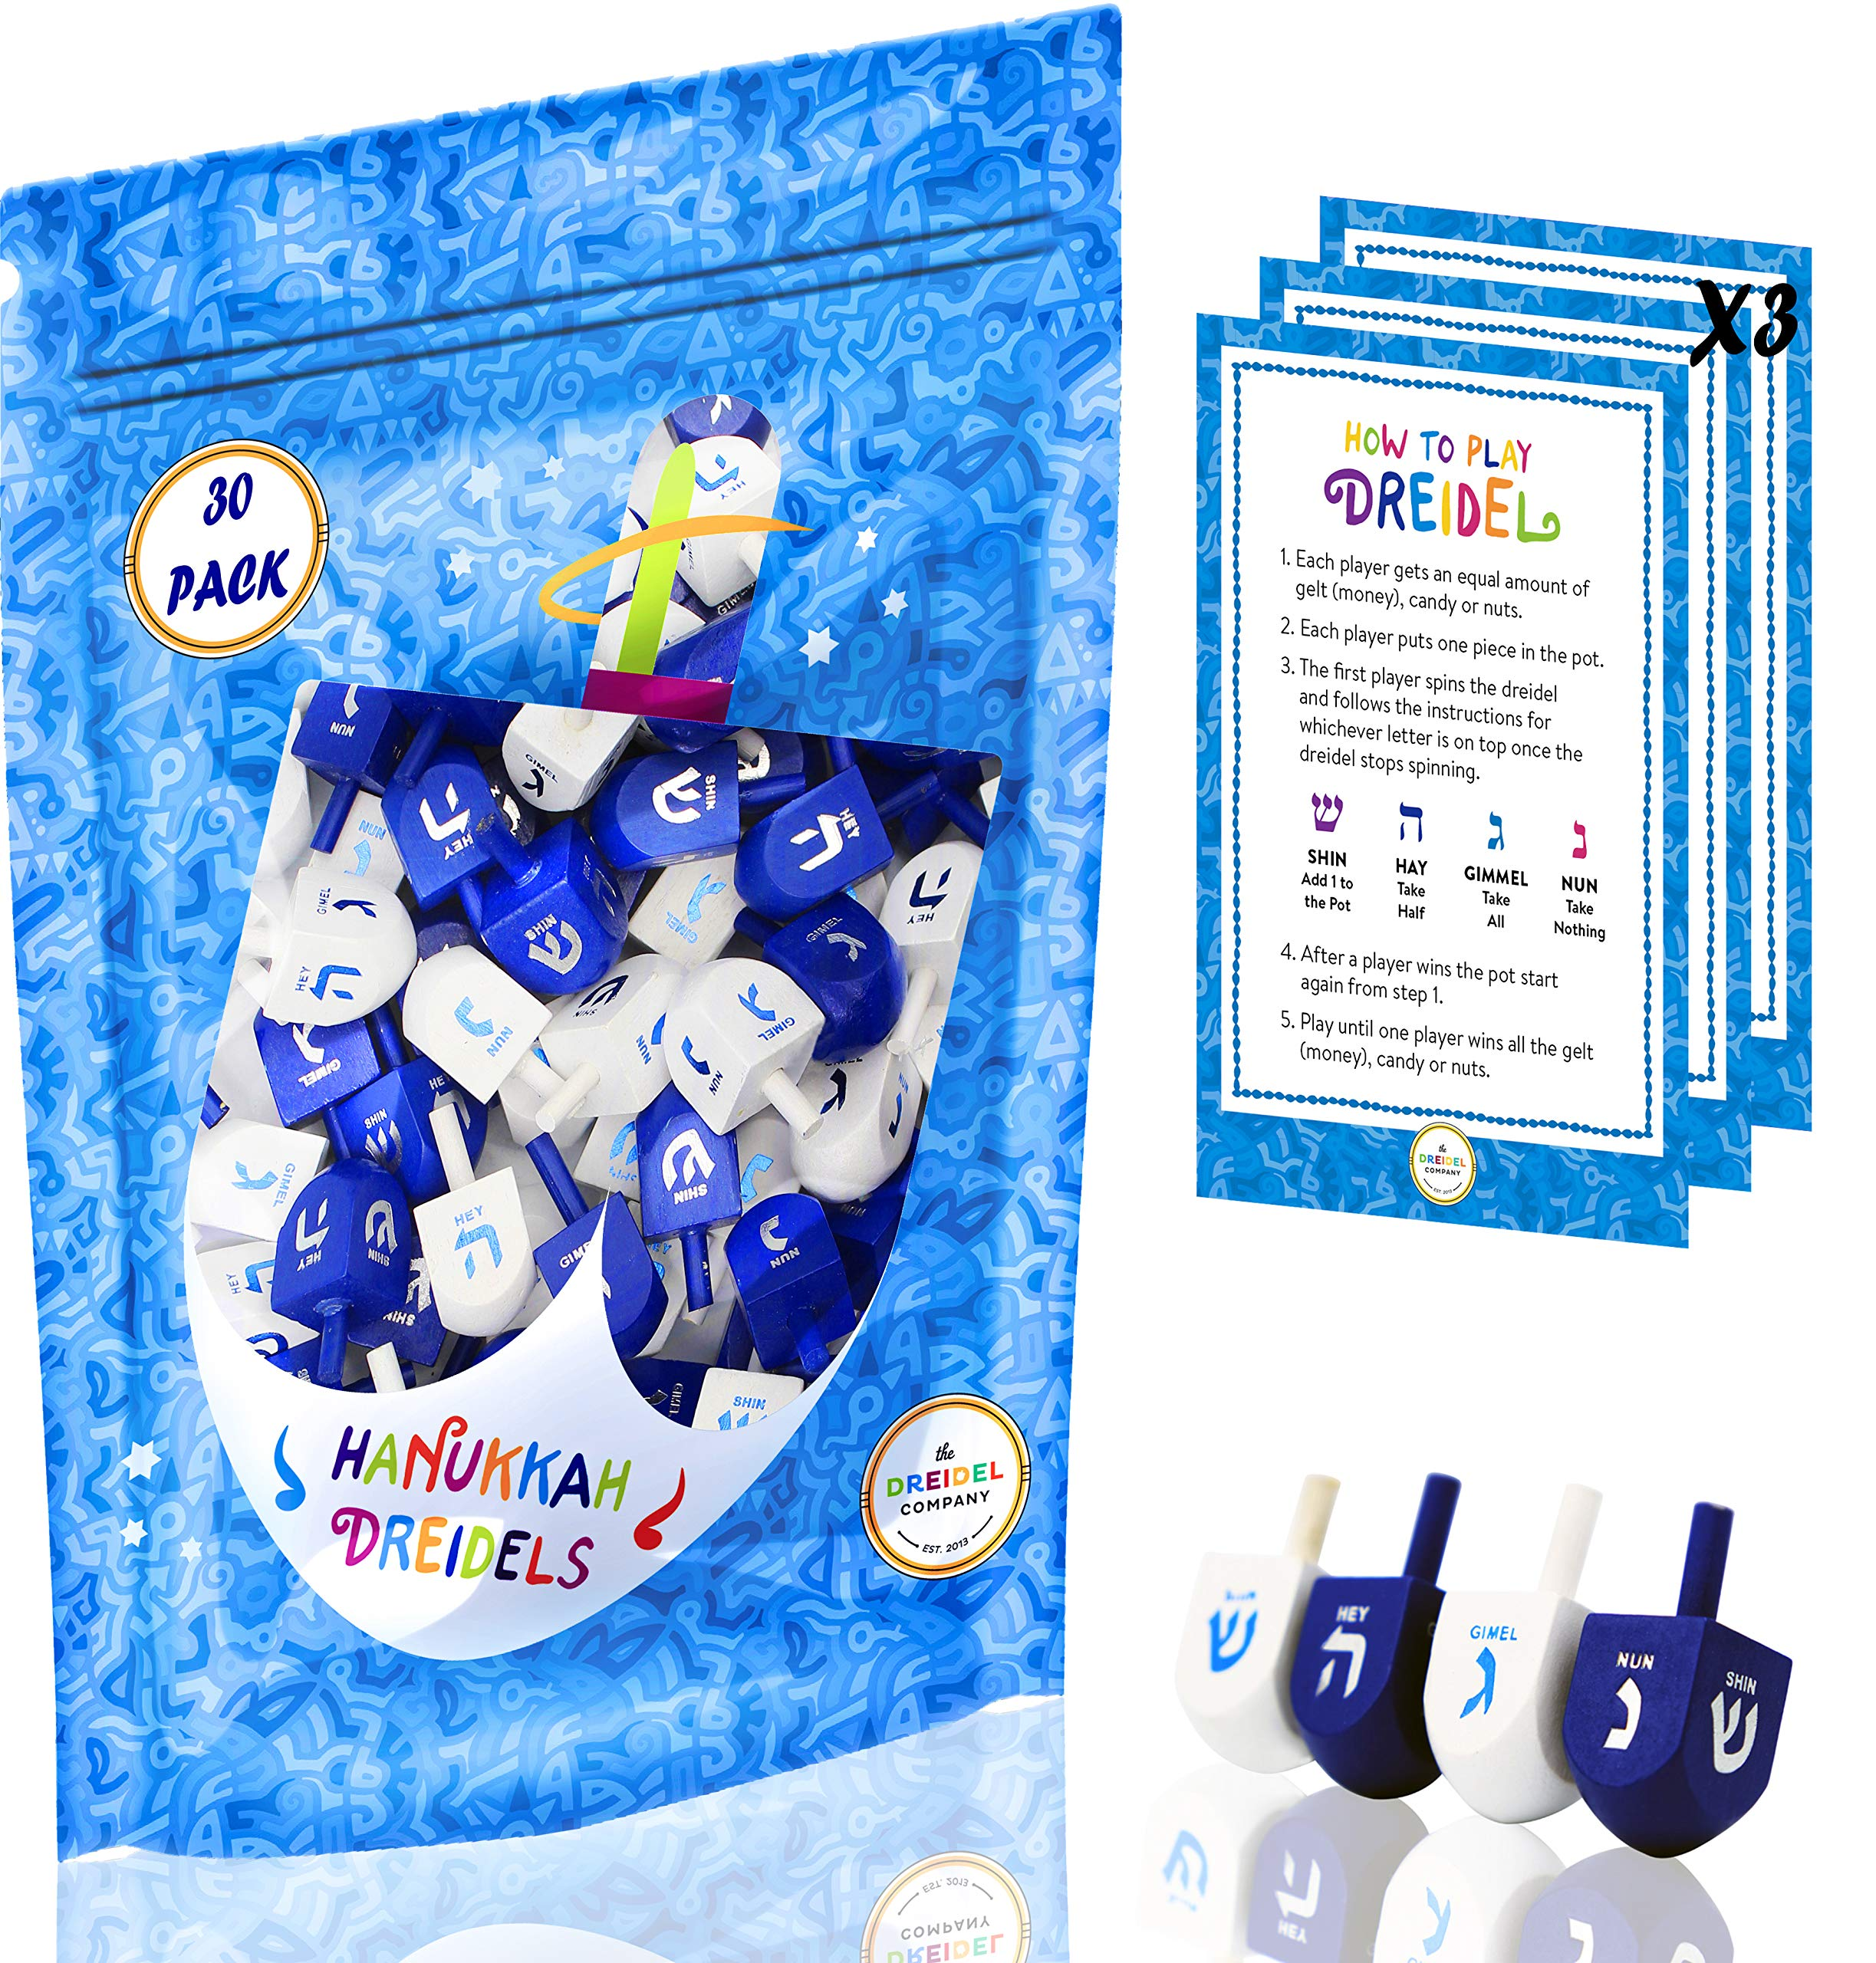 Wood Dreidel 30 Solid Blue & White Wooden Hanukkah Dreidels Hand Painted With English Transliteration - Includes x3 Game Instruction Cards! (30-Pack) by The Dreidel Company (Image #1)